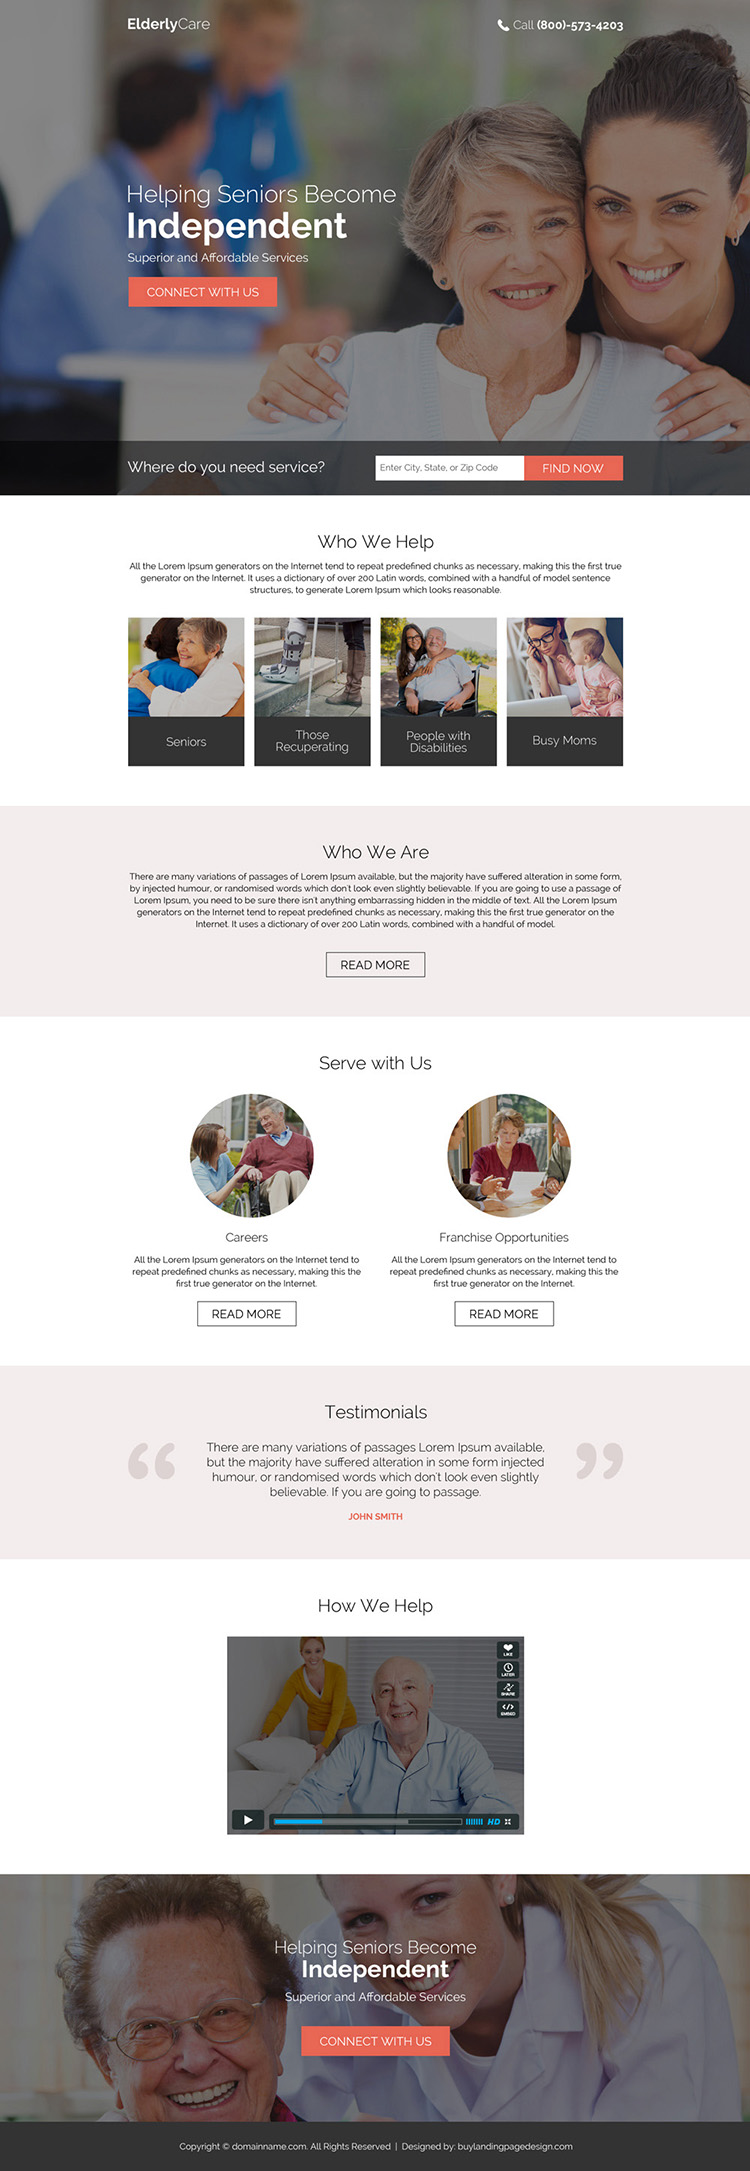 affordable elderly care service landing page design